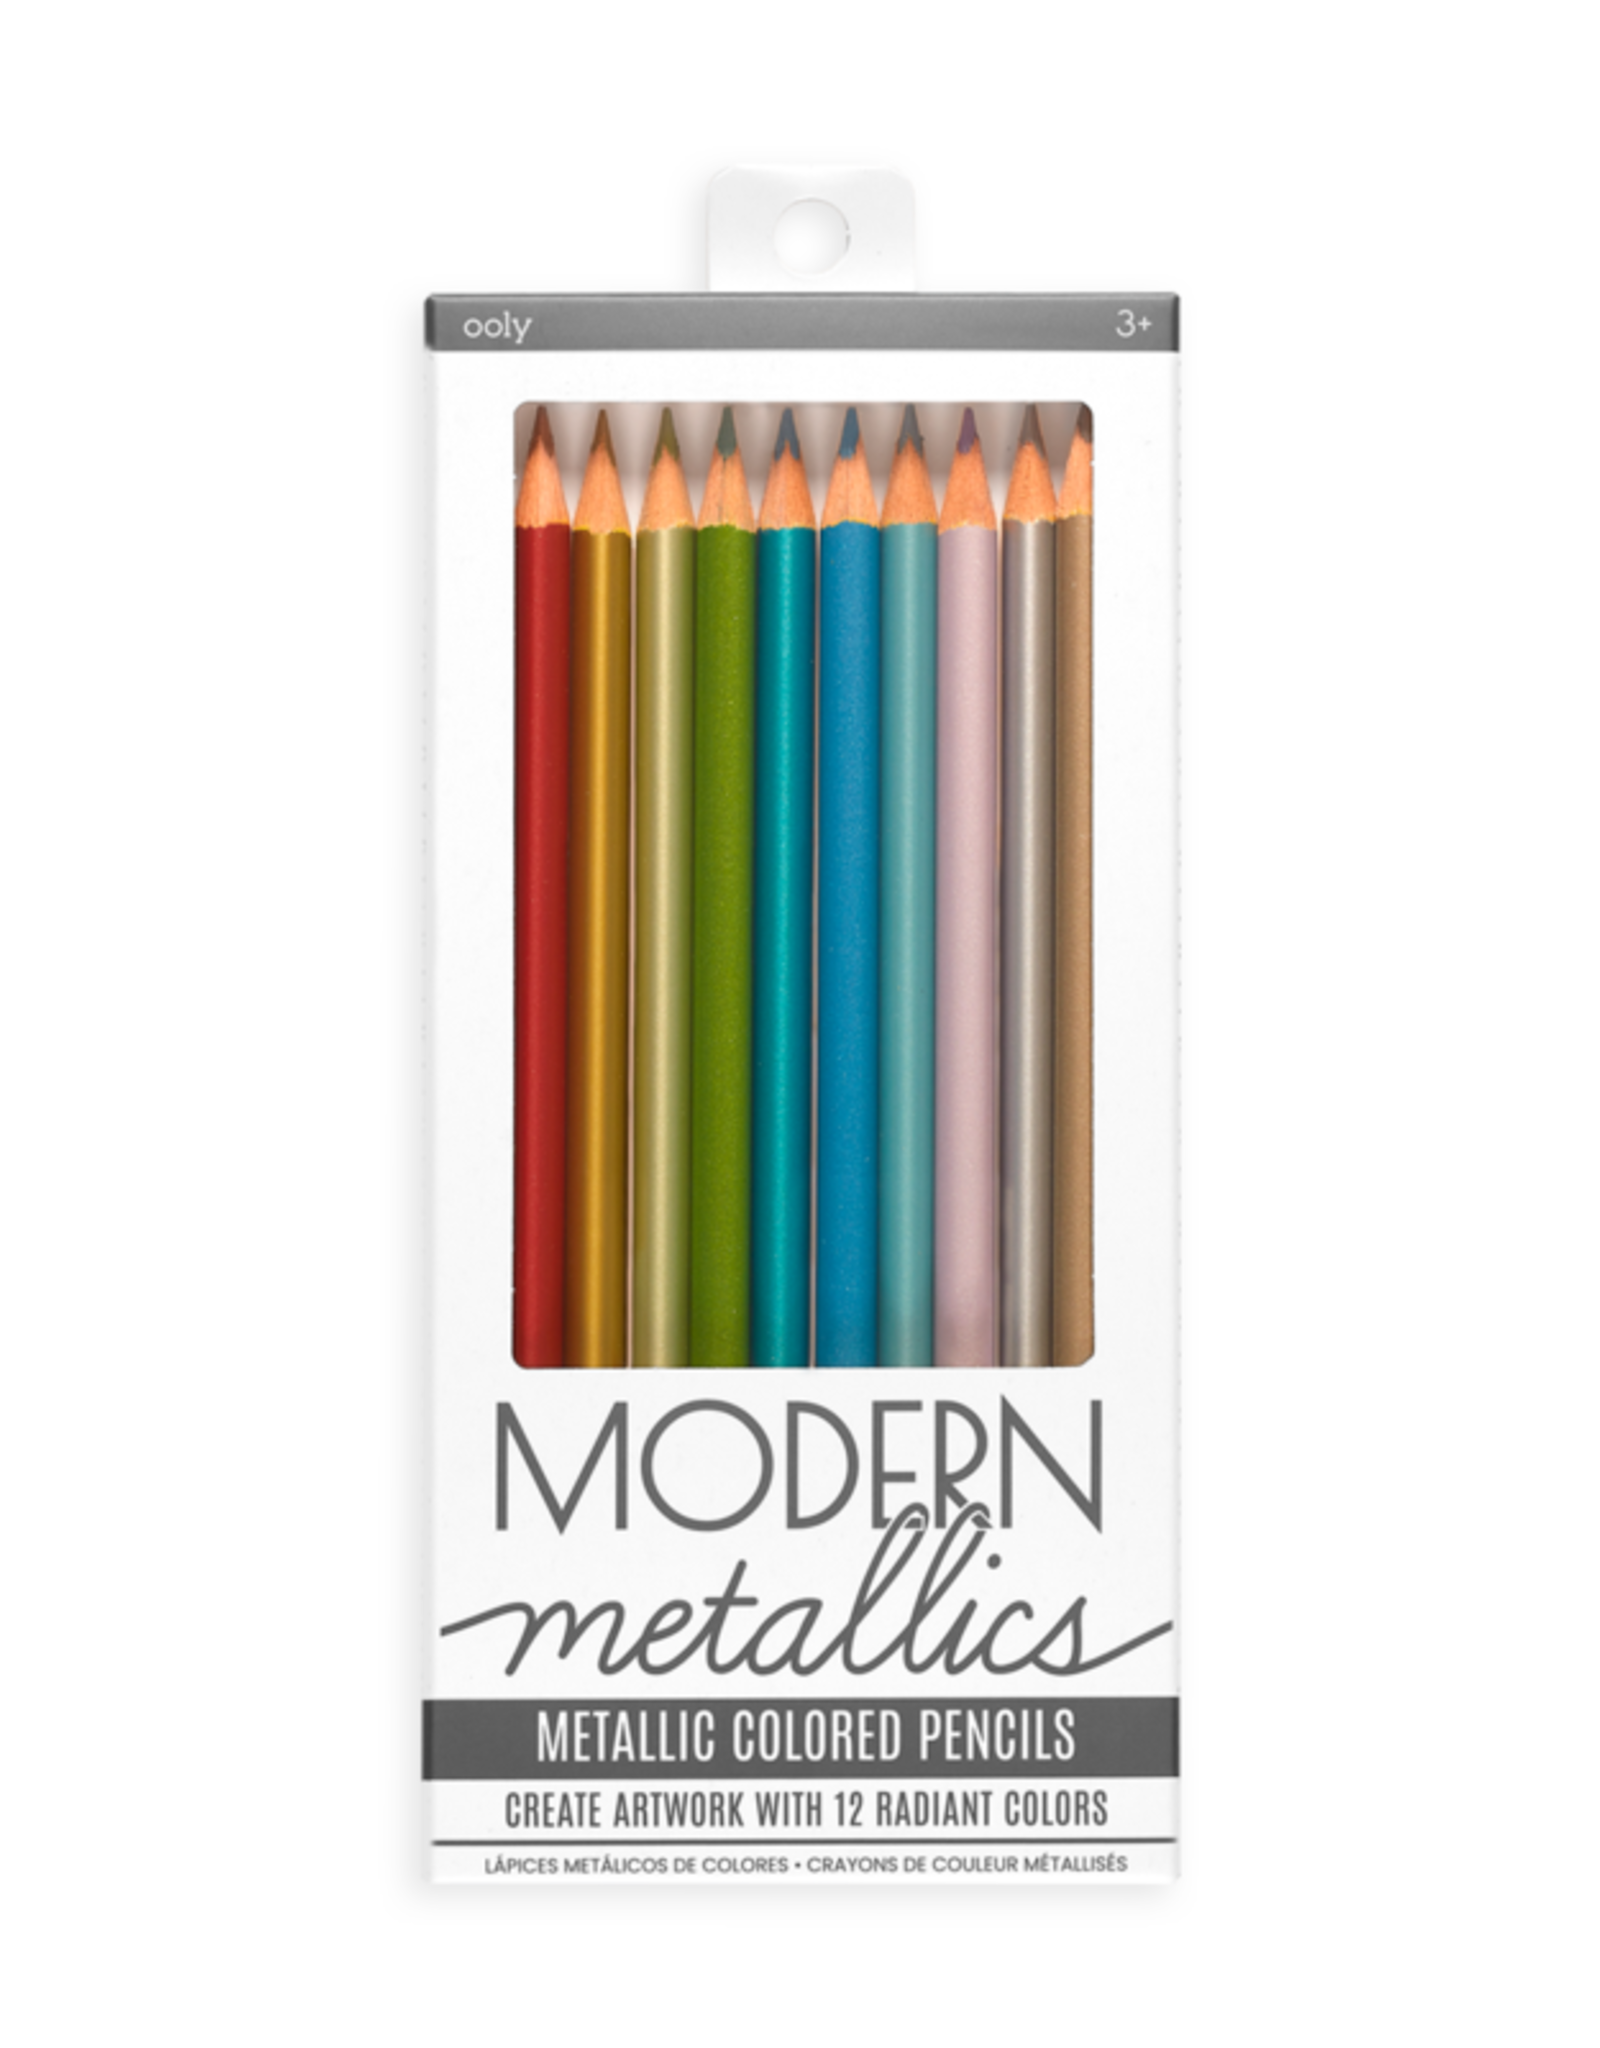 Ooly DBA International Arrivals Metallic Colored Pencils